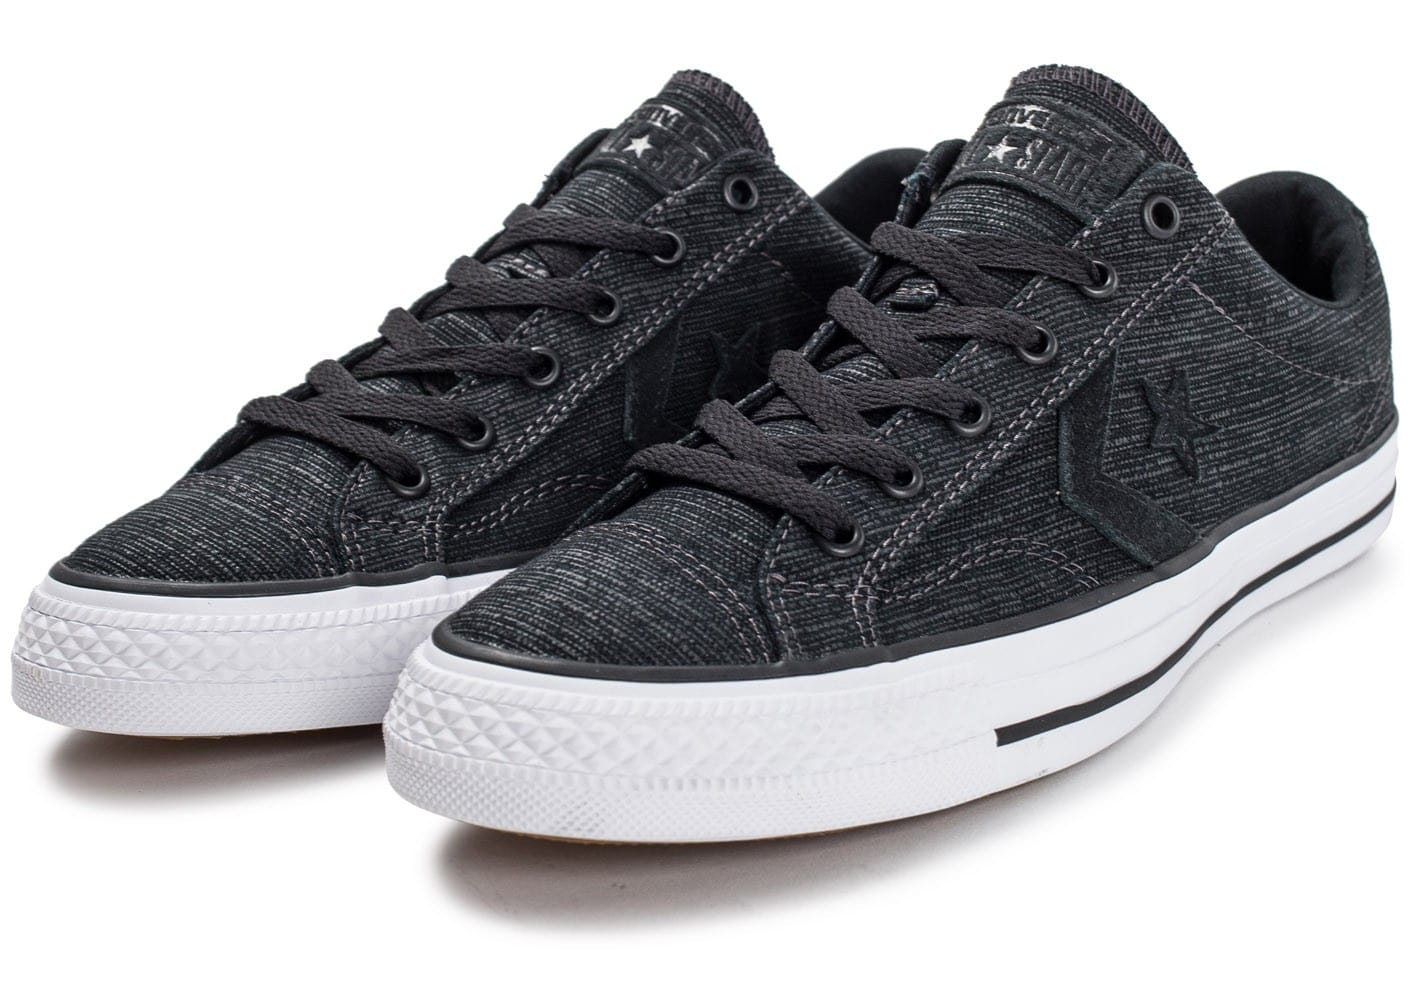 converse star player ox noire chaussures homme chausport. Black Bedroom Furniture Sets. Home Design Ideas